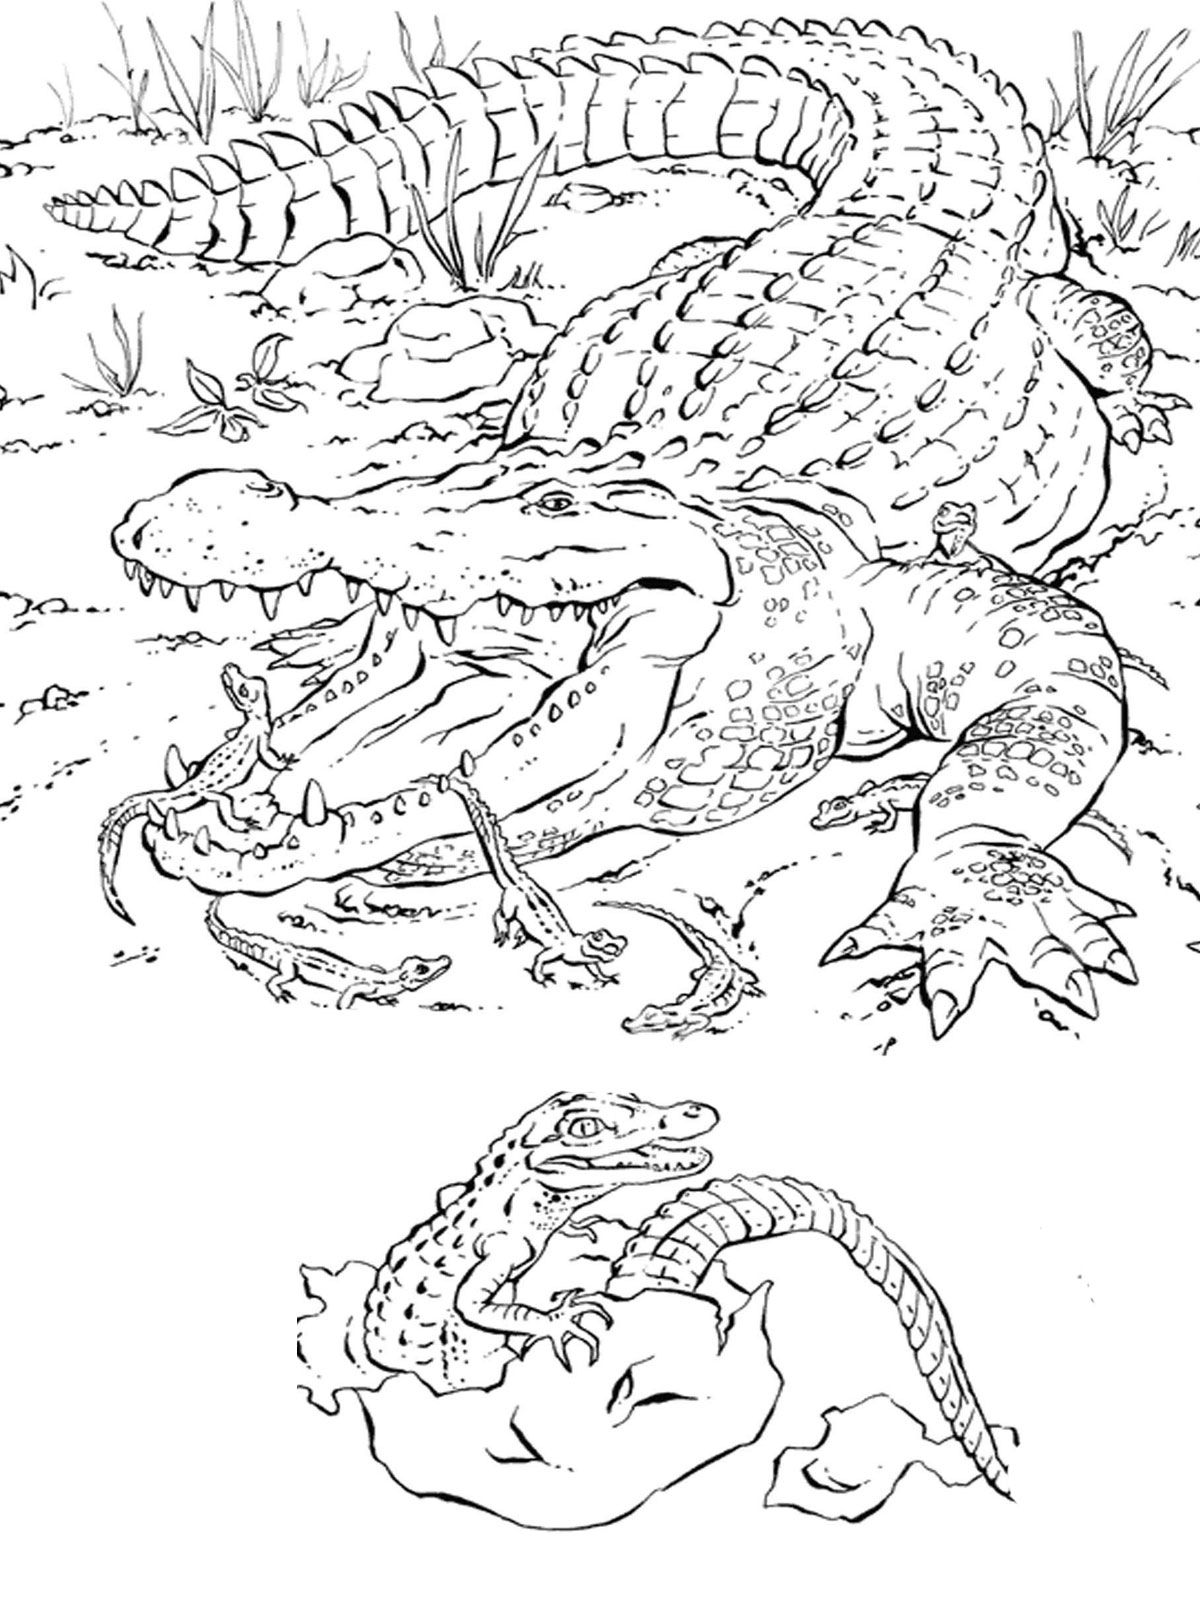 Pin By Kimberly Minter On Wild Animal Coloring Pages Detailed Coloring Pages Animal Coloring Books Printable Coloring Book